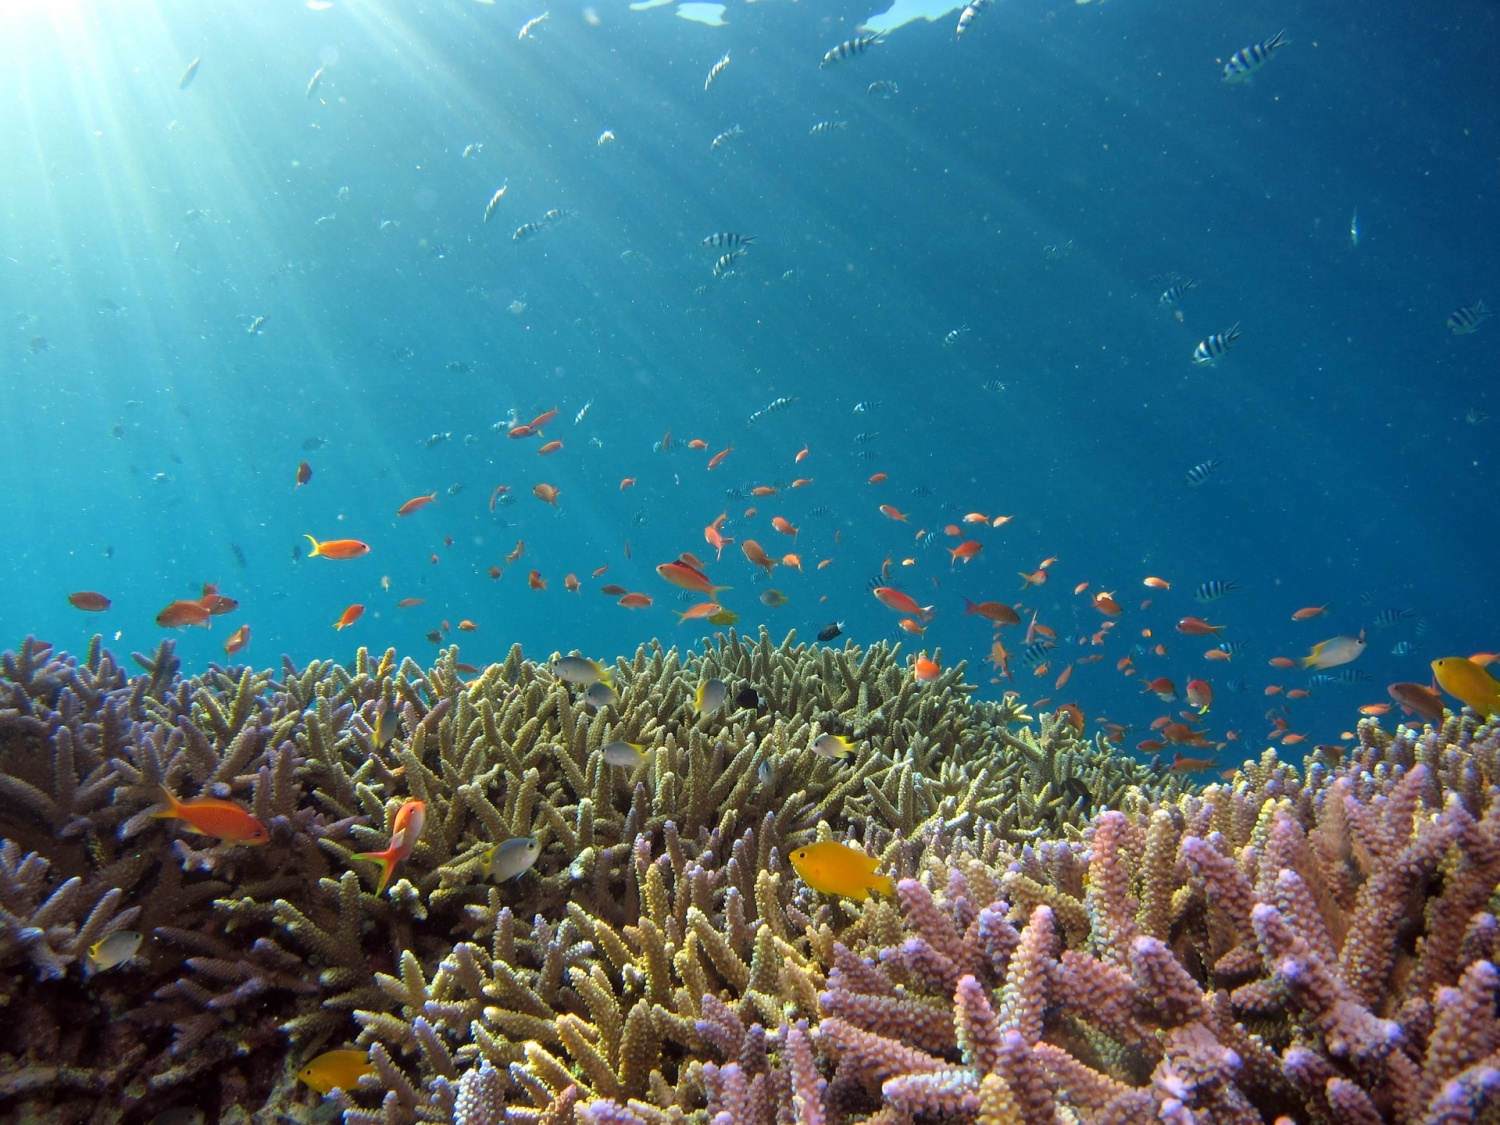 Earth's Coral Reefs in Great Danger Due to High Levels of CO2 Emission, Scientists Say